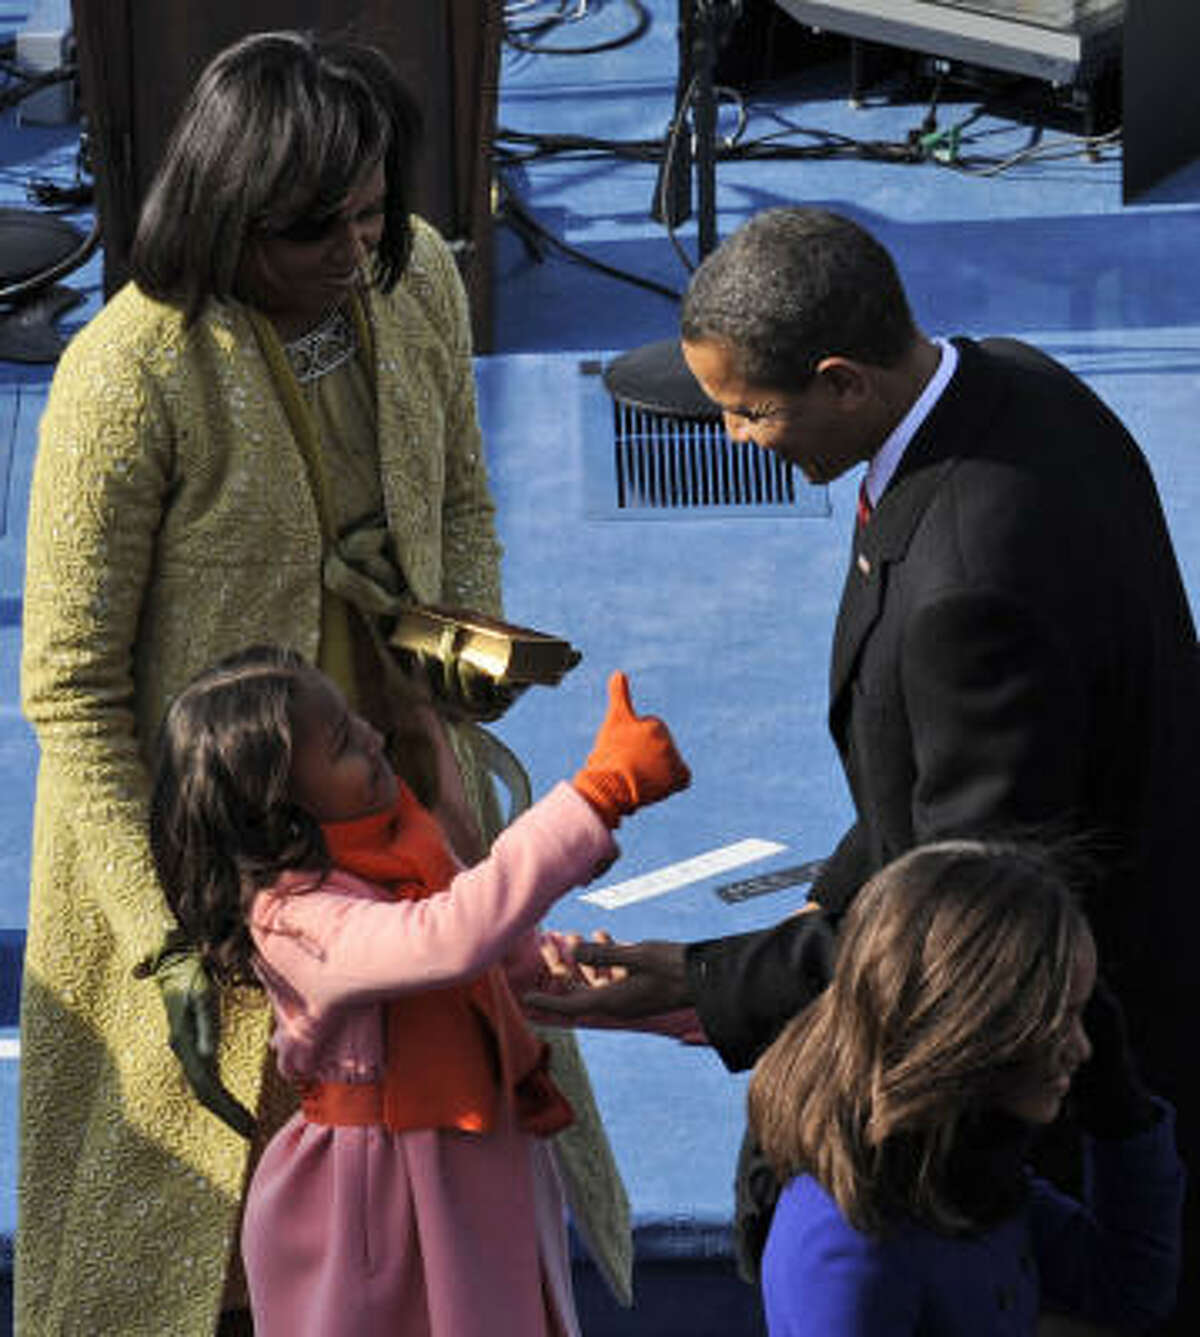 Sasha gives her father, President Barack Obama, the thumbs up after he took the oath of office. The girls have moved into the White House and are preparing for their new life.